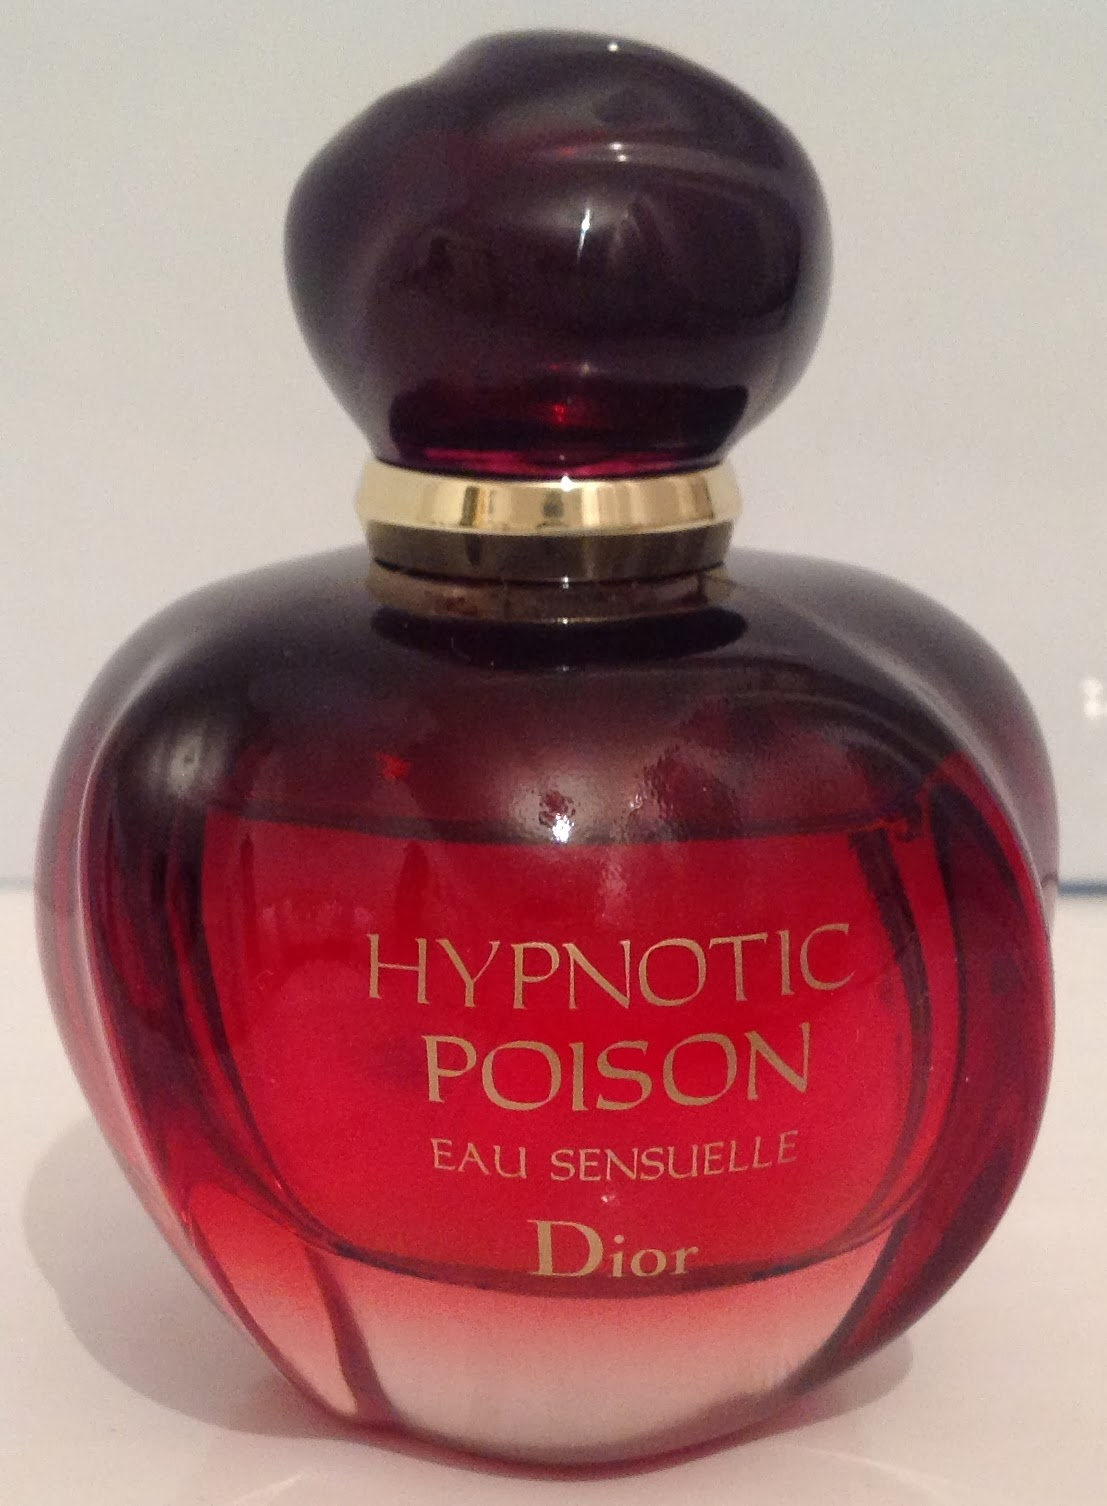 Dior Hypnotic Poison Eau Sensuelle Sephora The Art Of Mike Mignola